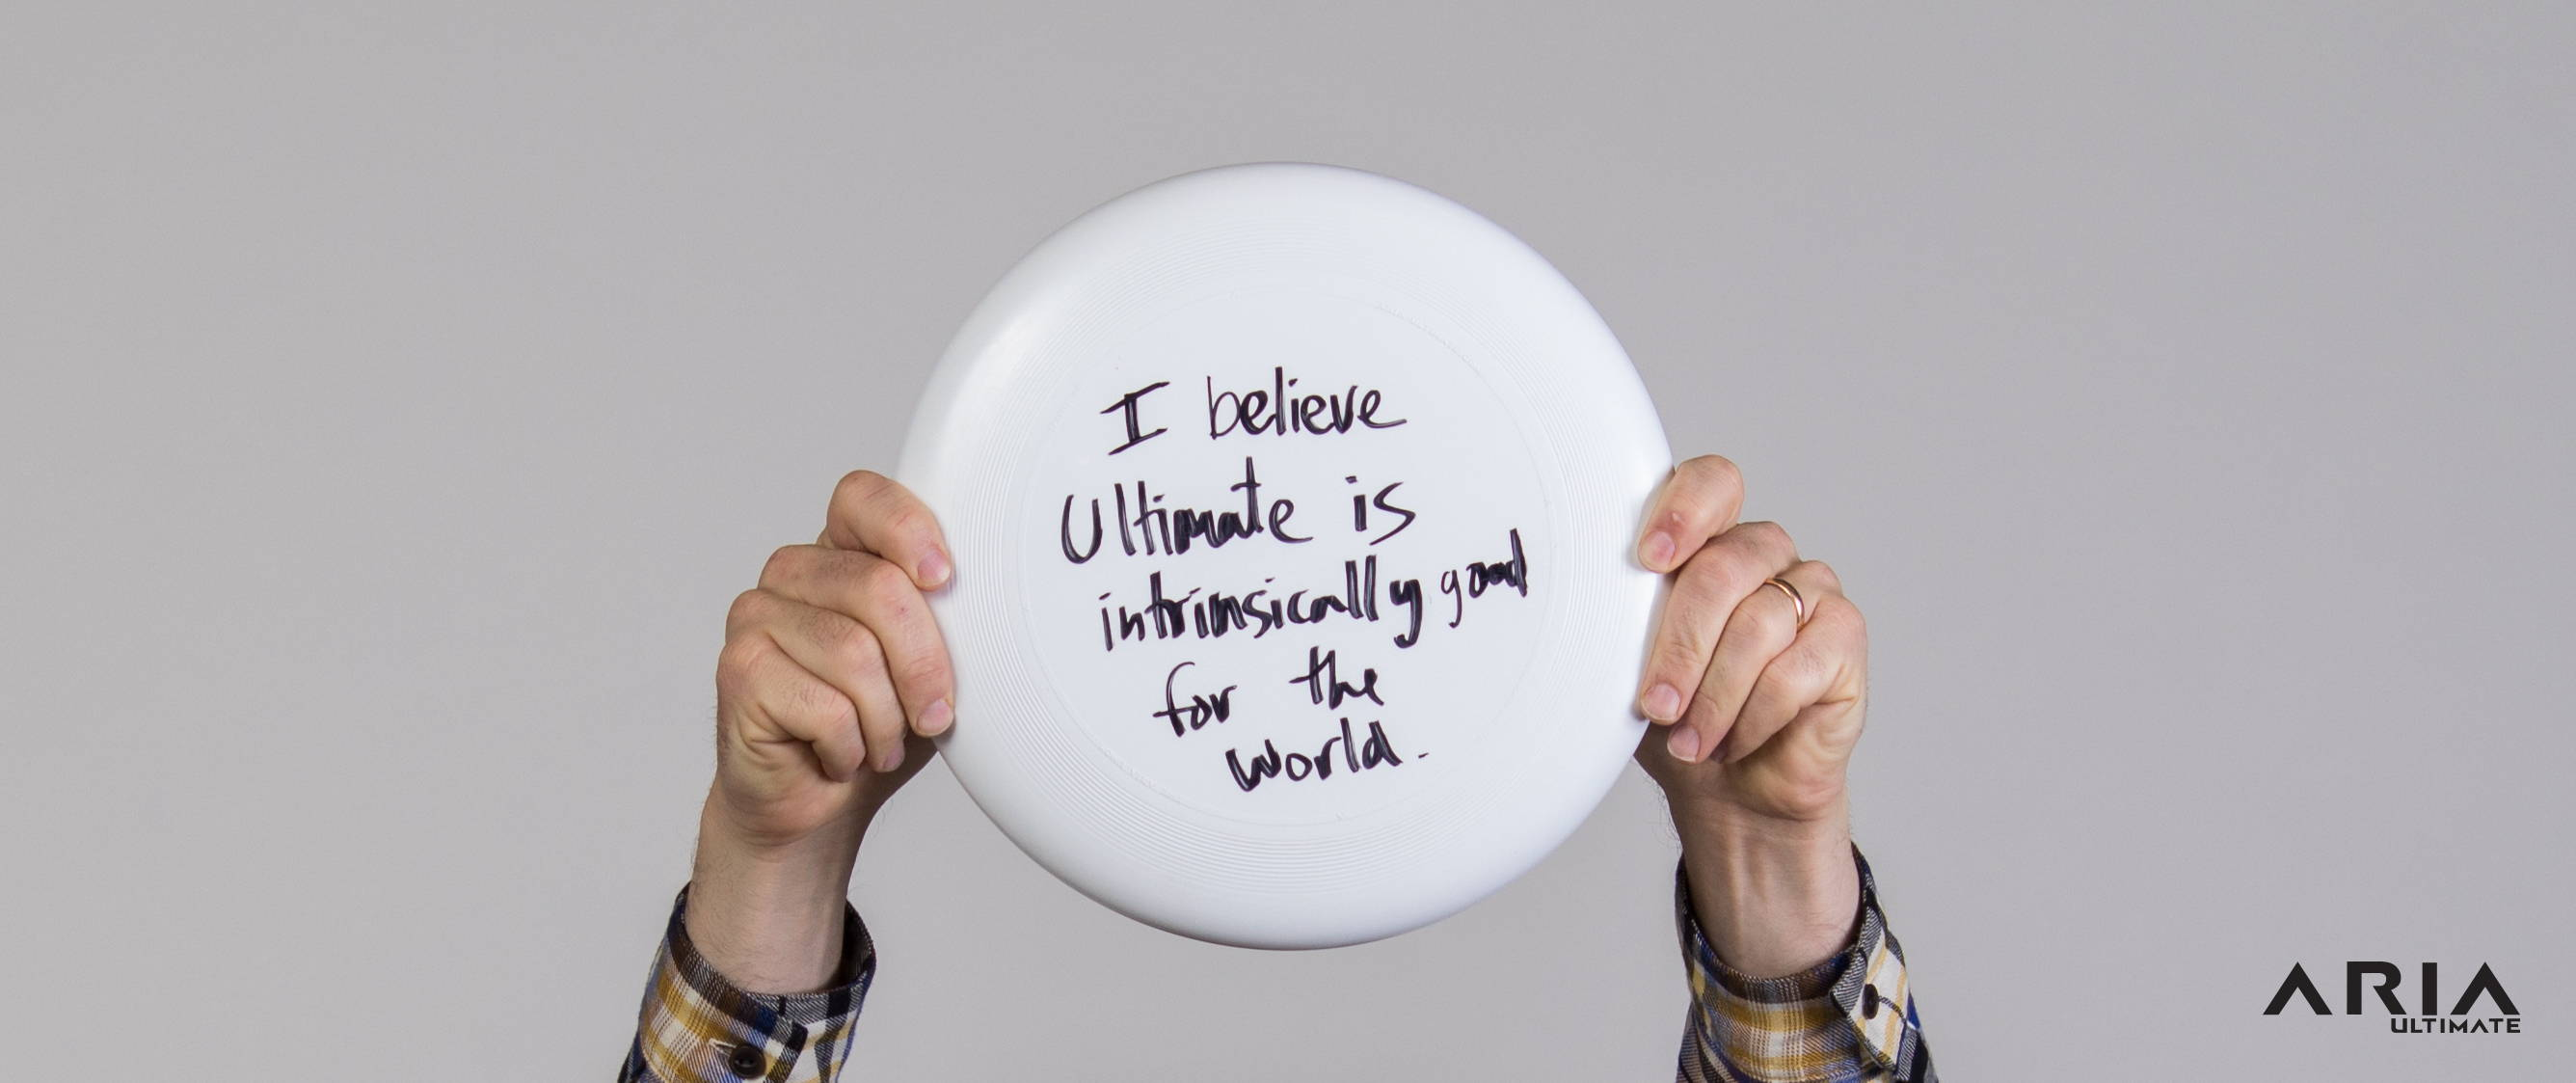 ARIA professional official ultimate flying disc for the sport commonly known as 'ultimate frisbee'  i lbelieve that ultimate is intrinsically good for the world